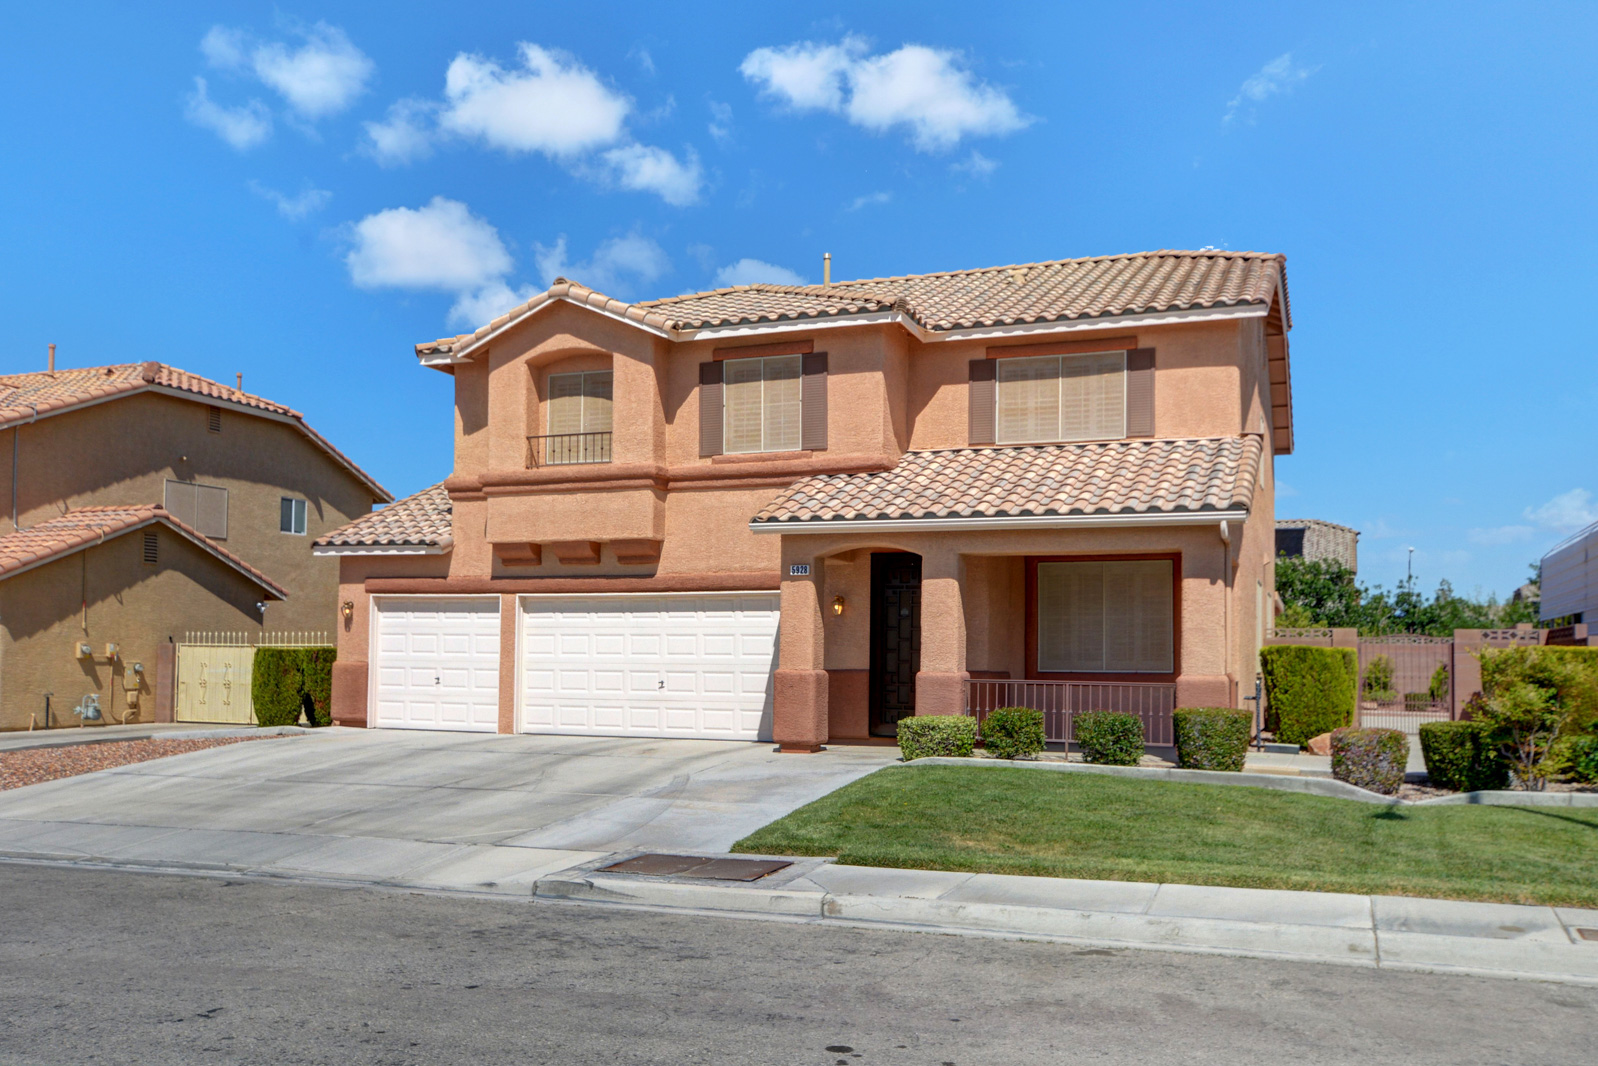 Stunning 4 bed 2.5 bath home! Featuring large living and family rooms, stainless steel appliances in the kitchen, updated cabinetry, and a pantry. Upstairs opens up to 4 bedrooms with extra padded carpet, a loft, the laundry room, and 2 full bathrooms. Huge backyard with an over-sized covered patio. 3 car finished garage includes the water softener. Updated flooring throughout. Two Blocks from the Calvary Chapel School.